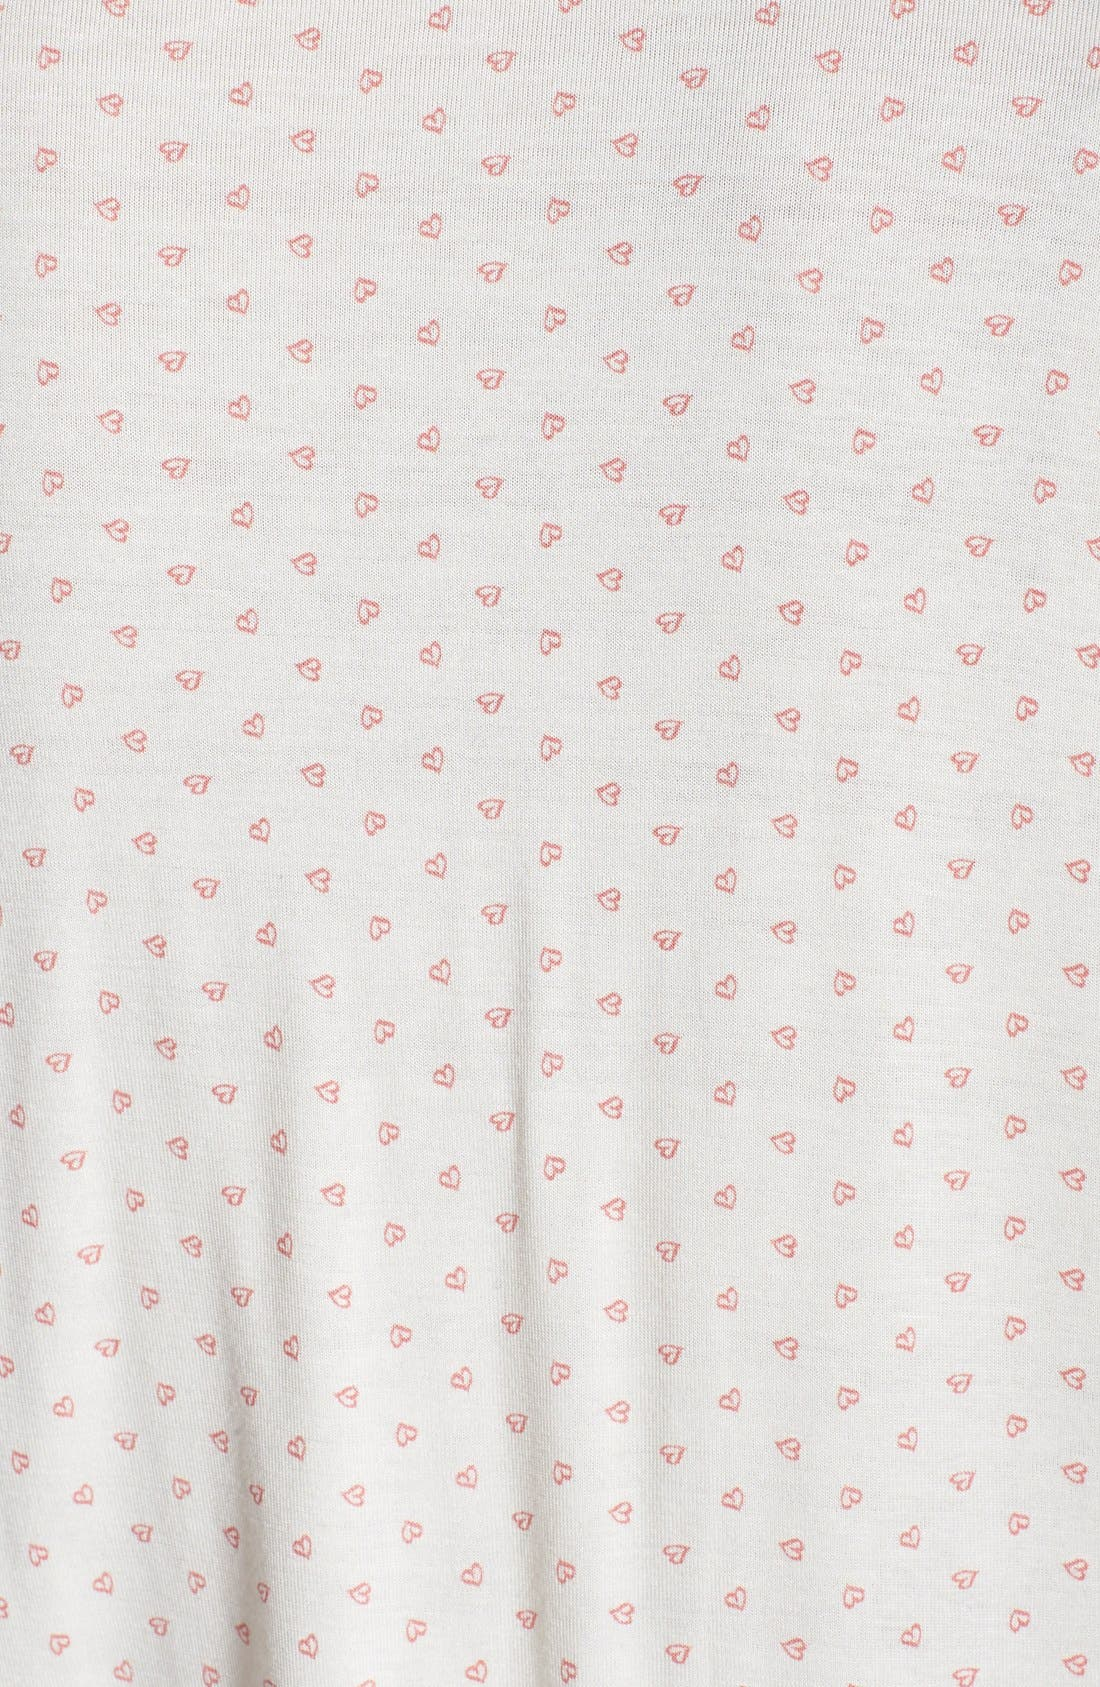 'Open Hearted' Jersey Shorts Pajamas,                             Alternate thumbnail 3, color,                             Ivory/ Vintage Rose